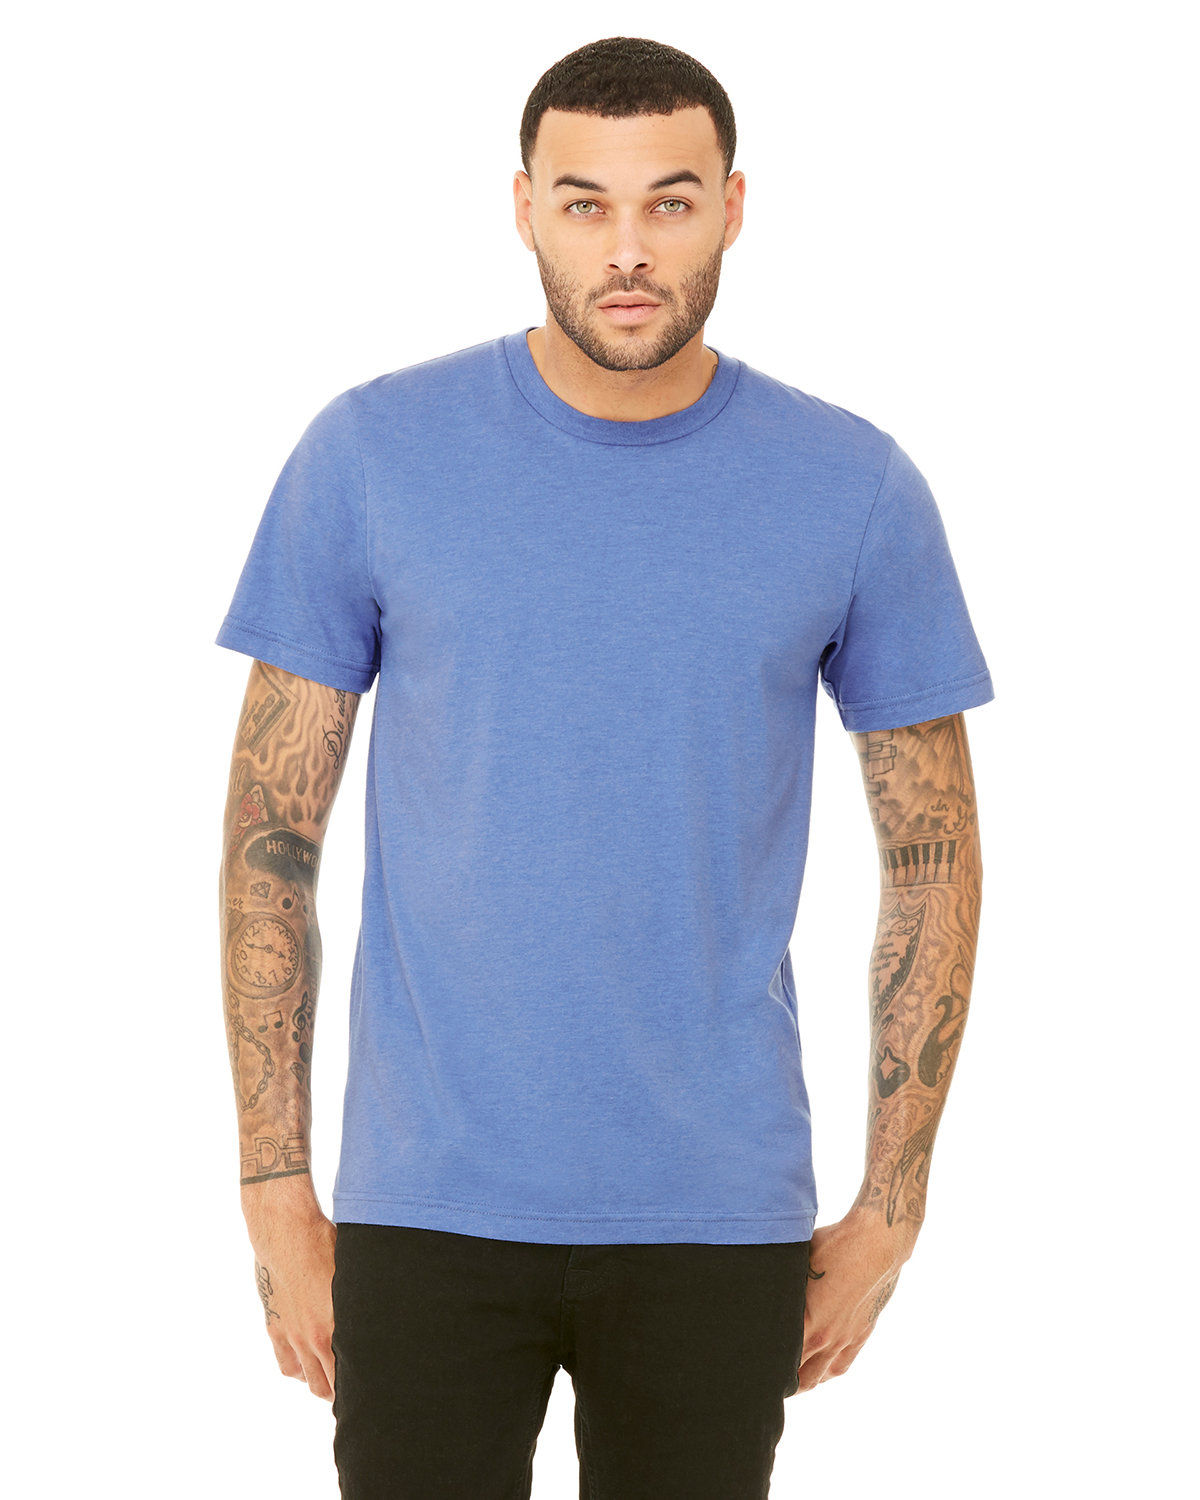 Bella + Canvas Unisex Heather CVC T-Shirt HTHR COLUM BLUE